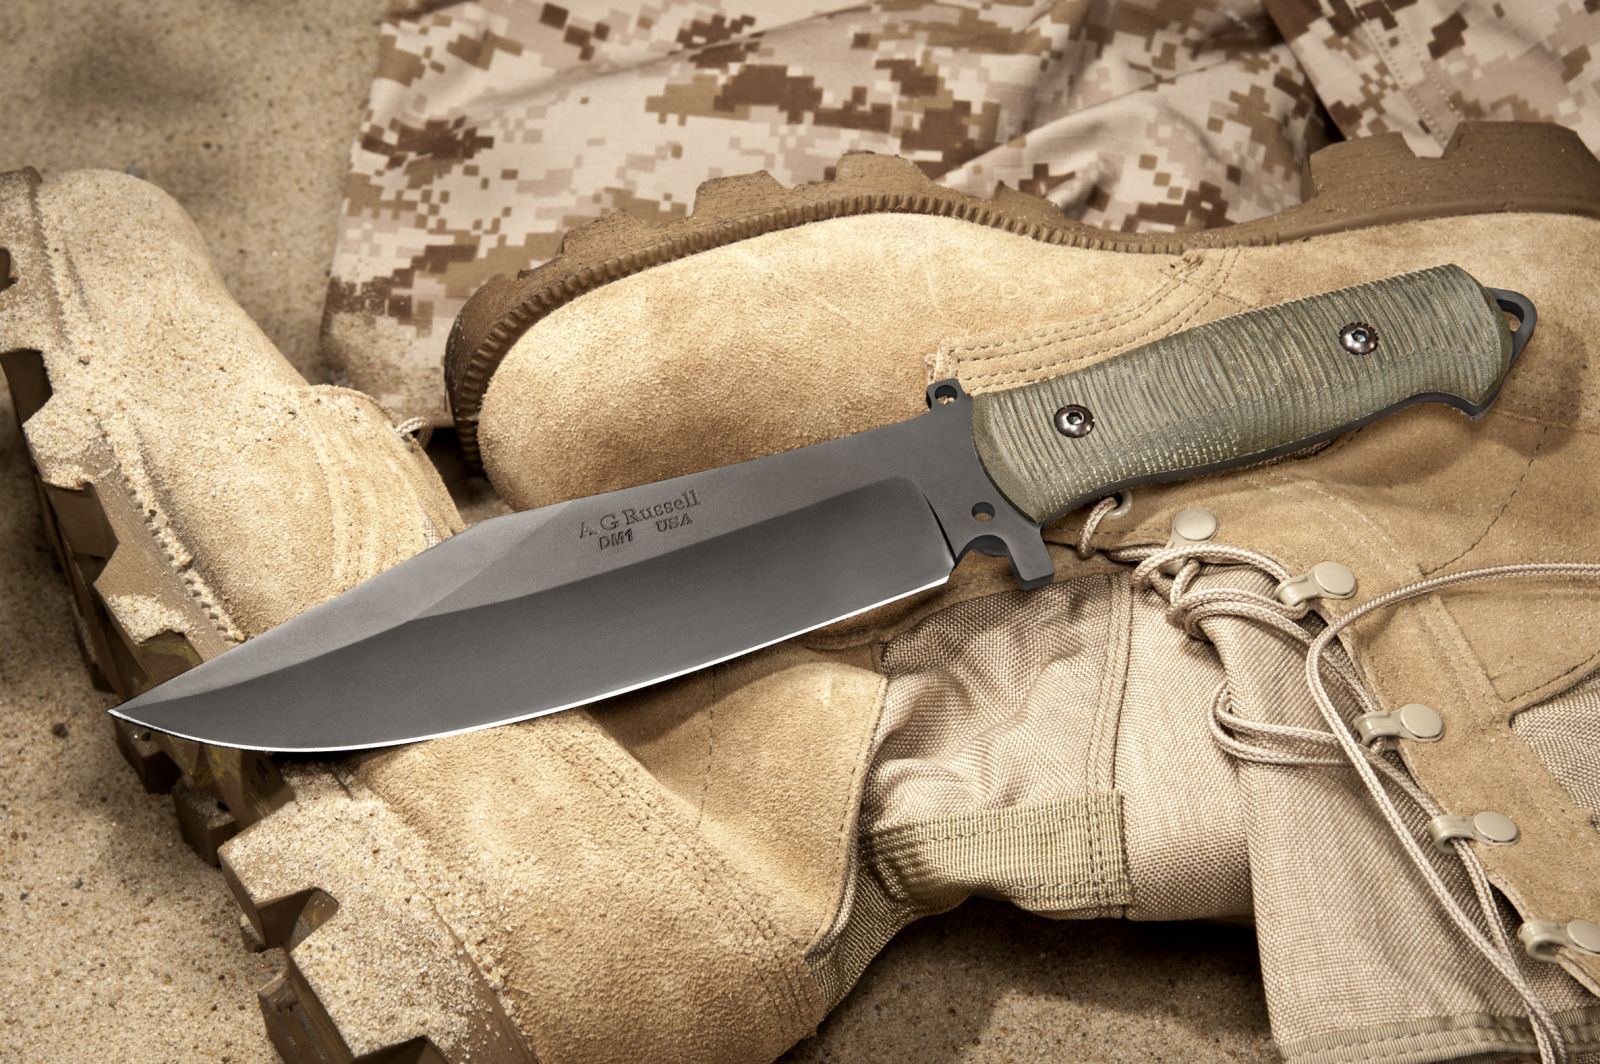 A.G. Russell Sandbox Bowie Blade with DM-1 non-stainless high carbon steel